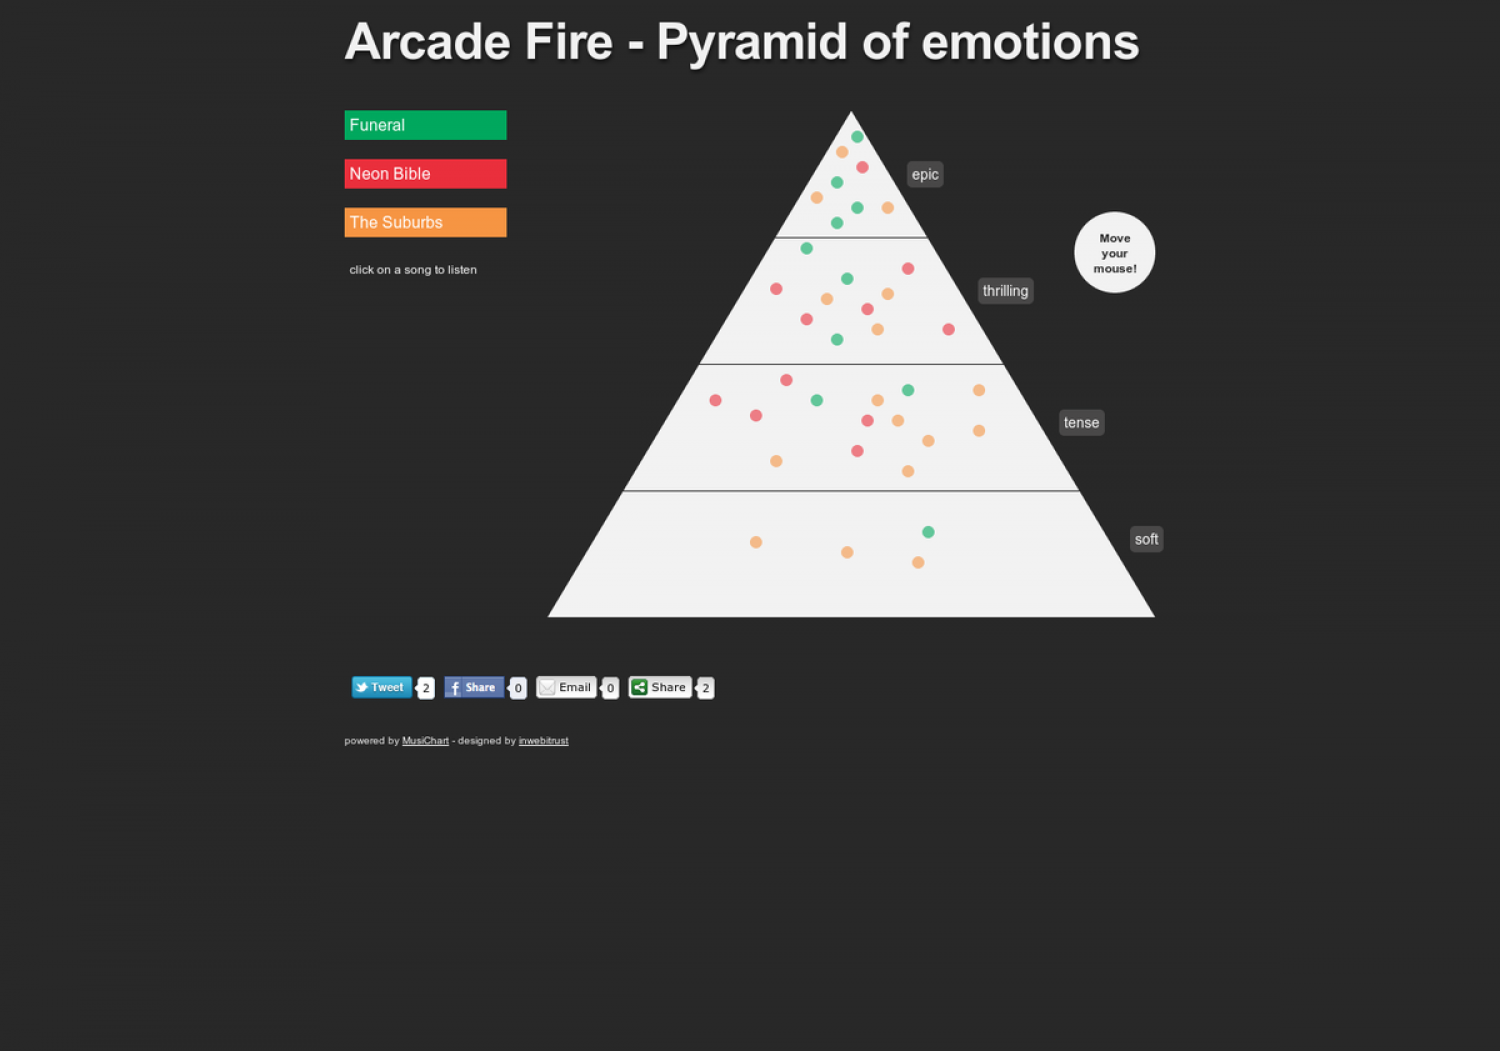 The Arcade Fire - Interactive Pyramid of emotions by songs Infographic